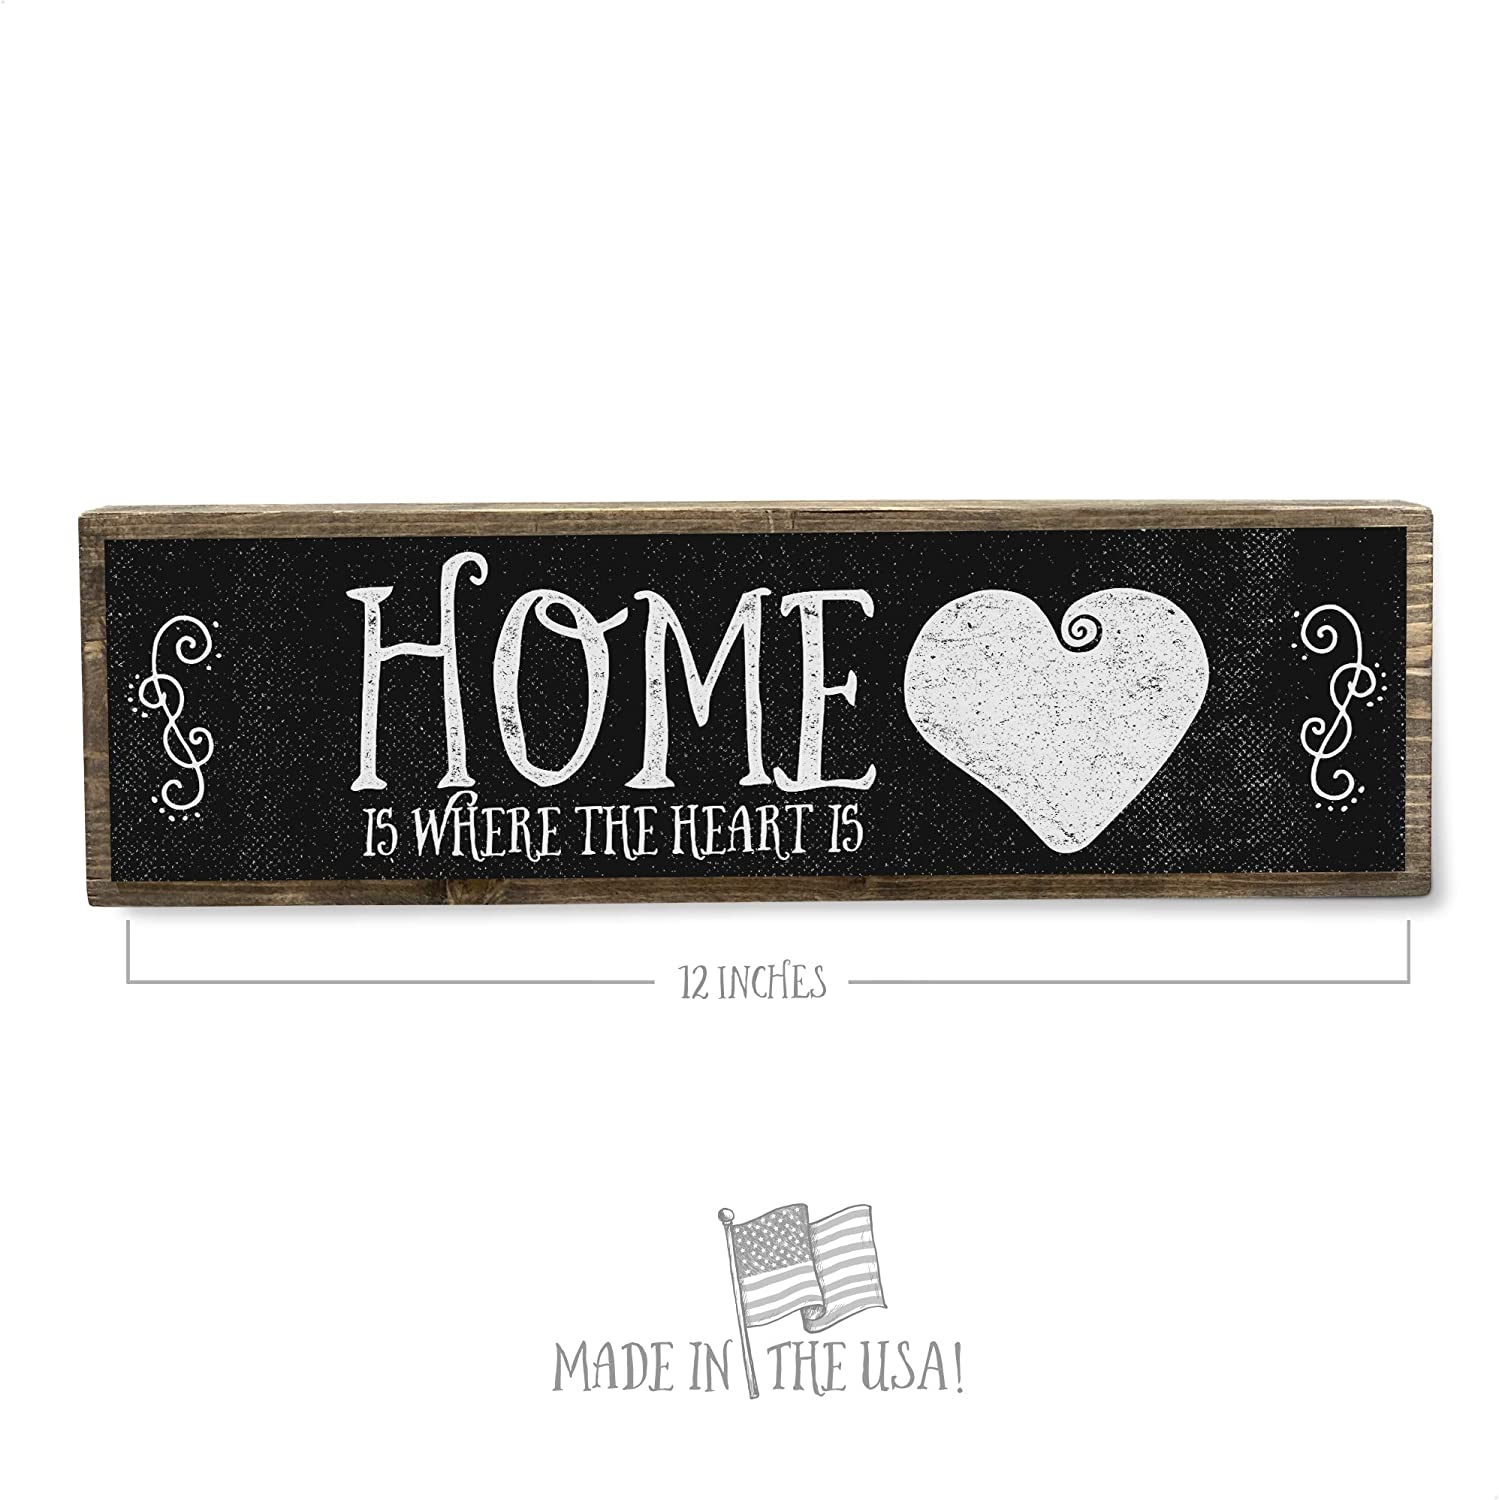 Amazon Com Anvevo Home Is Where The Heart Is Metal Wood Sign Dark Rustic Farmhouse Decor Rustic Wall Art Home Decor Modern Home Decor Home Kitchen,Best Wireless Charging Station For Apple Watch And Iphone